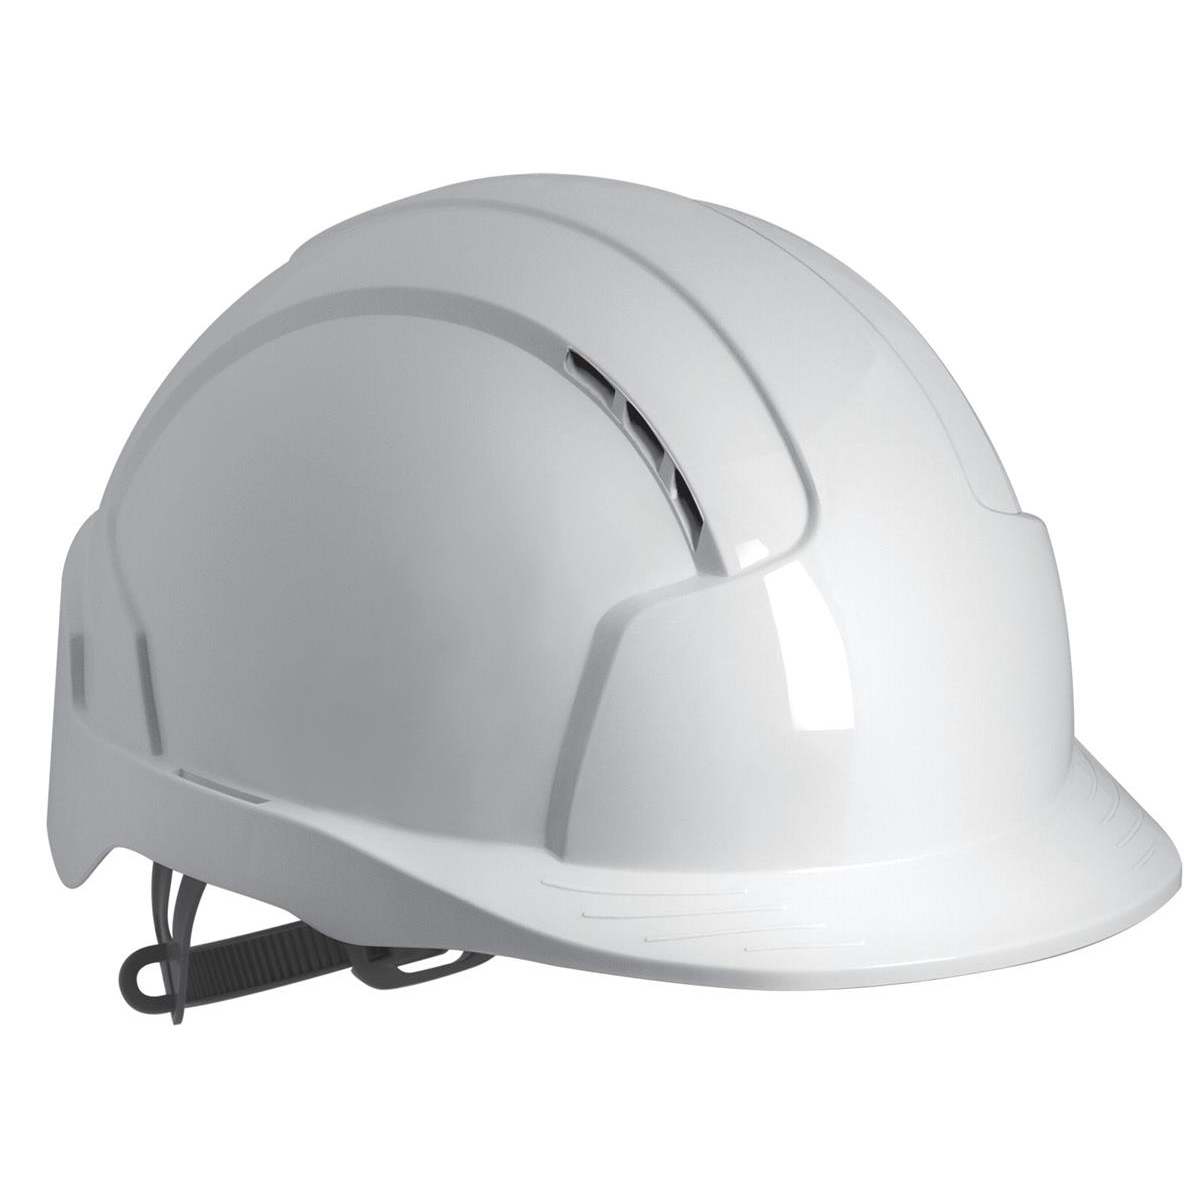 Head Protection